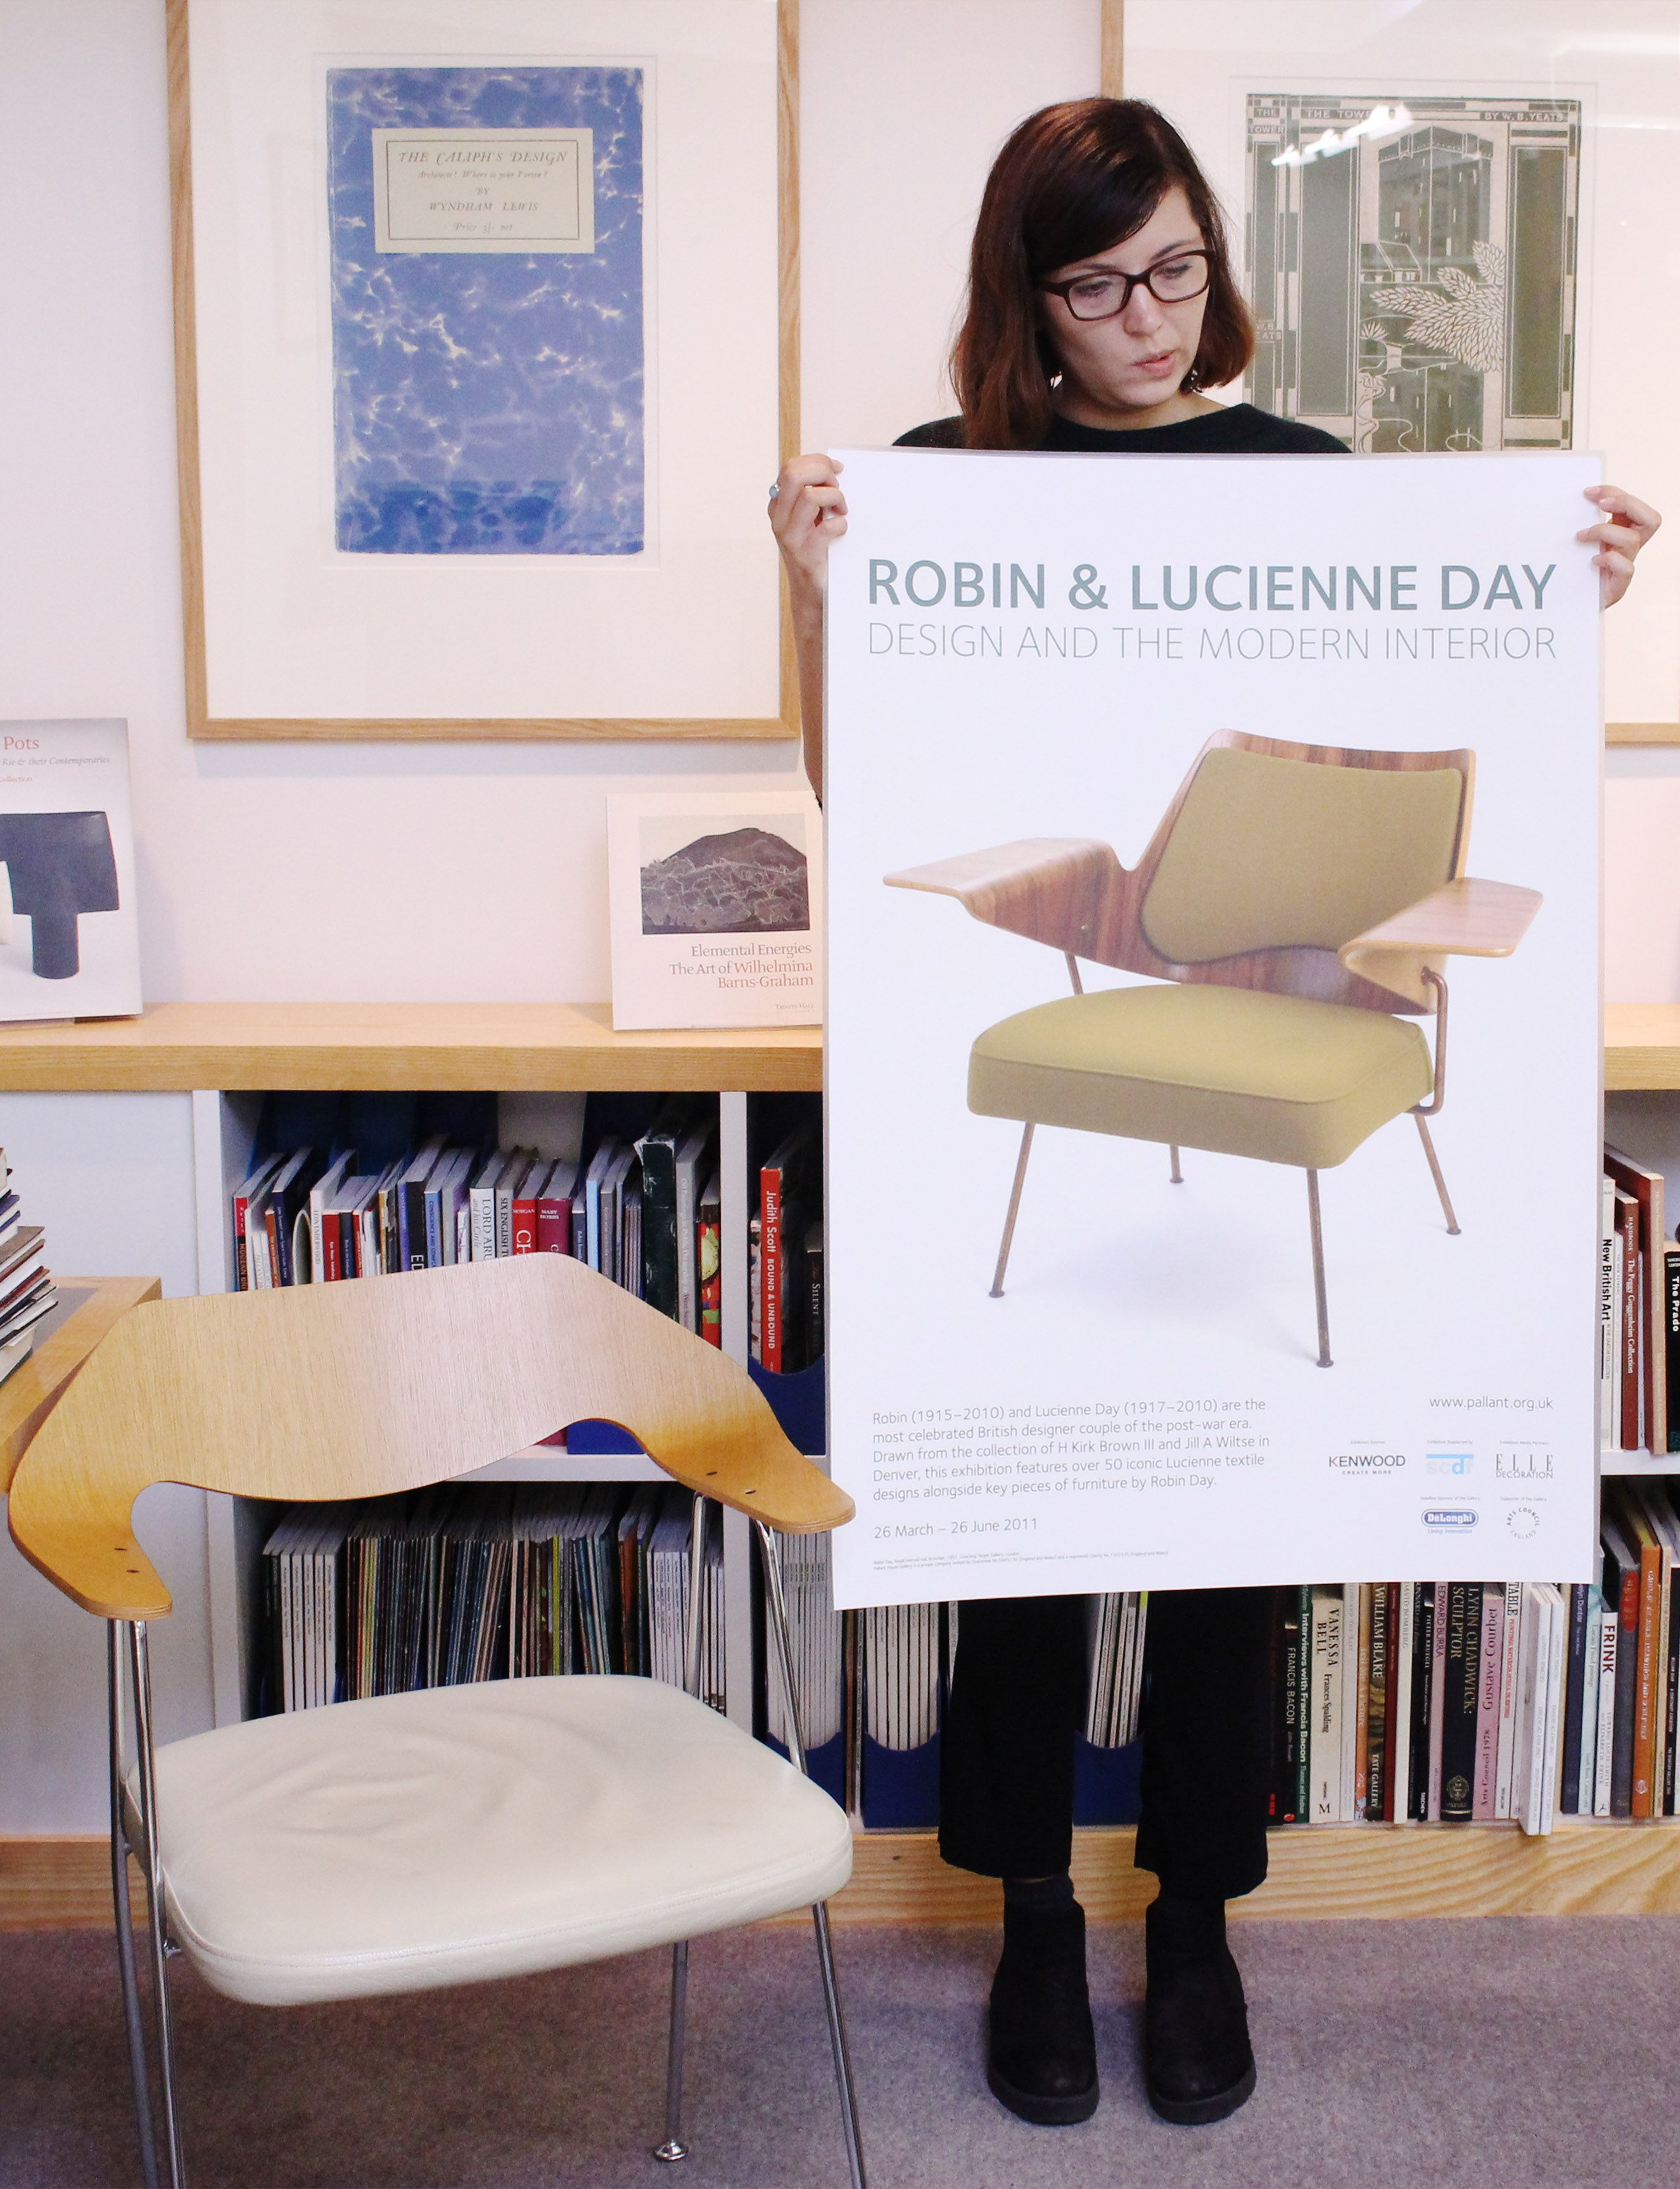 Charmant ... Modern Interior Robin And Lucienne Day Are The Most Celebrated British  Designer Couple Of The Post War Era. This Exhibition Focused On Robinu0027s  Furniture ...